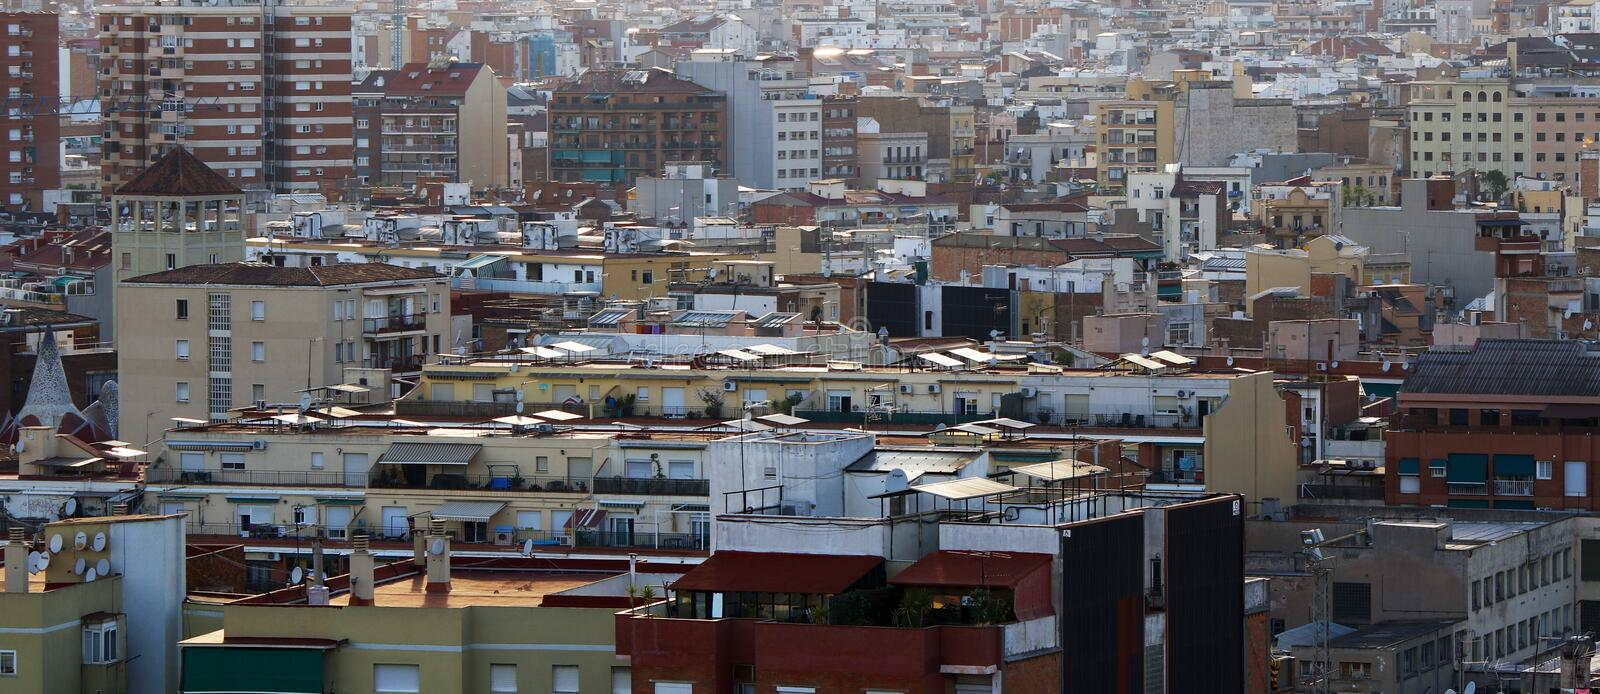 Roofs and houses of Barcelona. Generic view of various housing in Barcelona, Spain, July 2016 royalty free stock photo